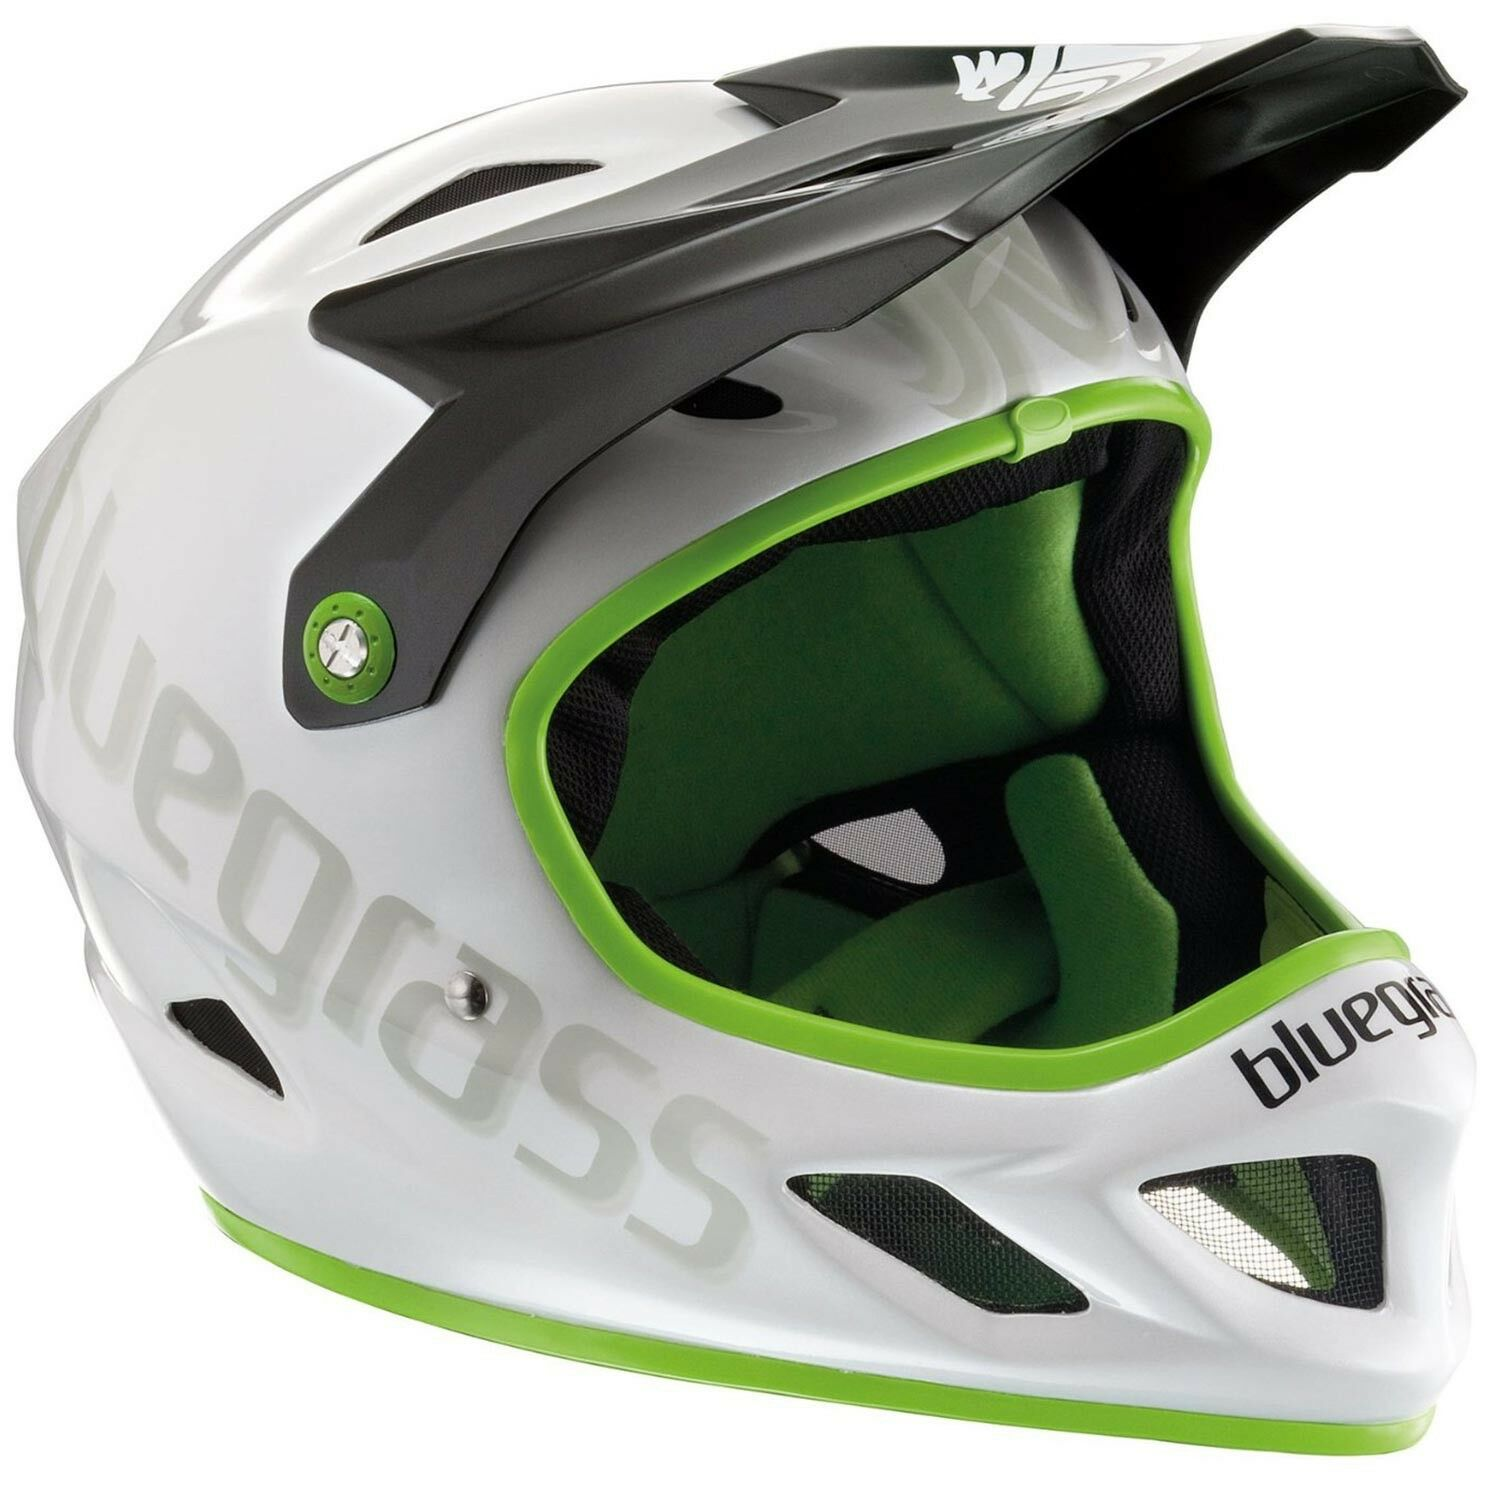 Casco Integrale blugrass Explicit Enduro BMX Trail Downhill Freeride Integrale